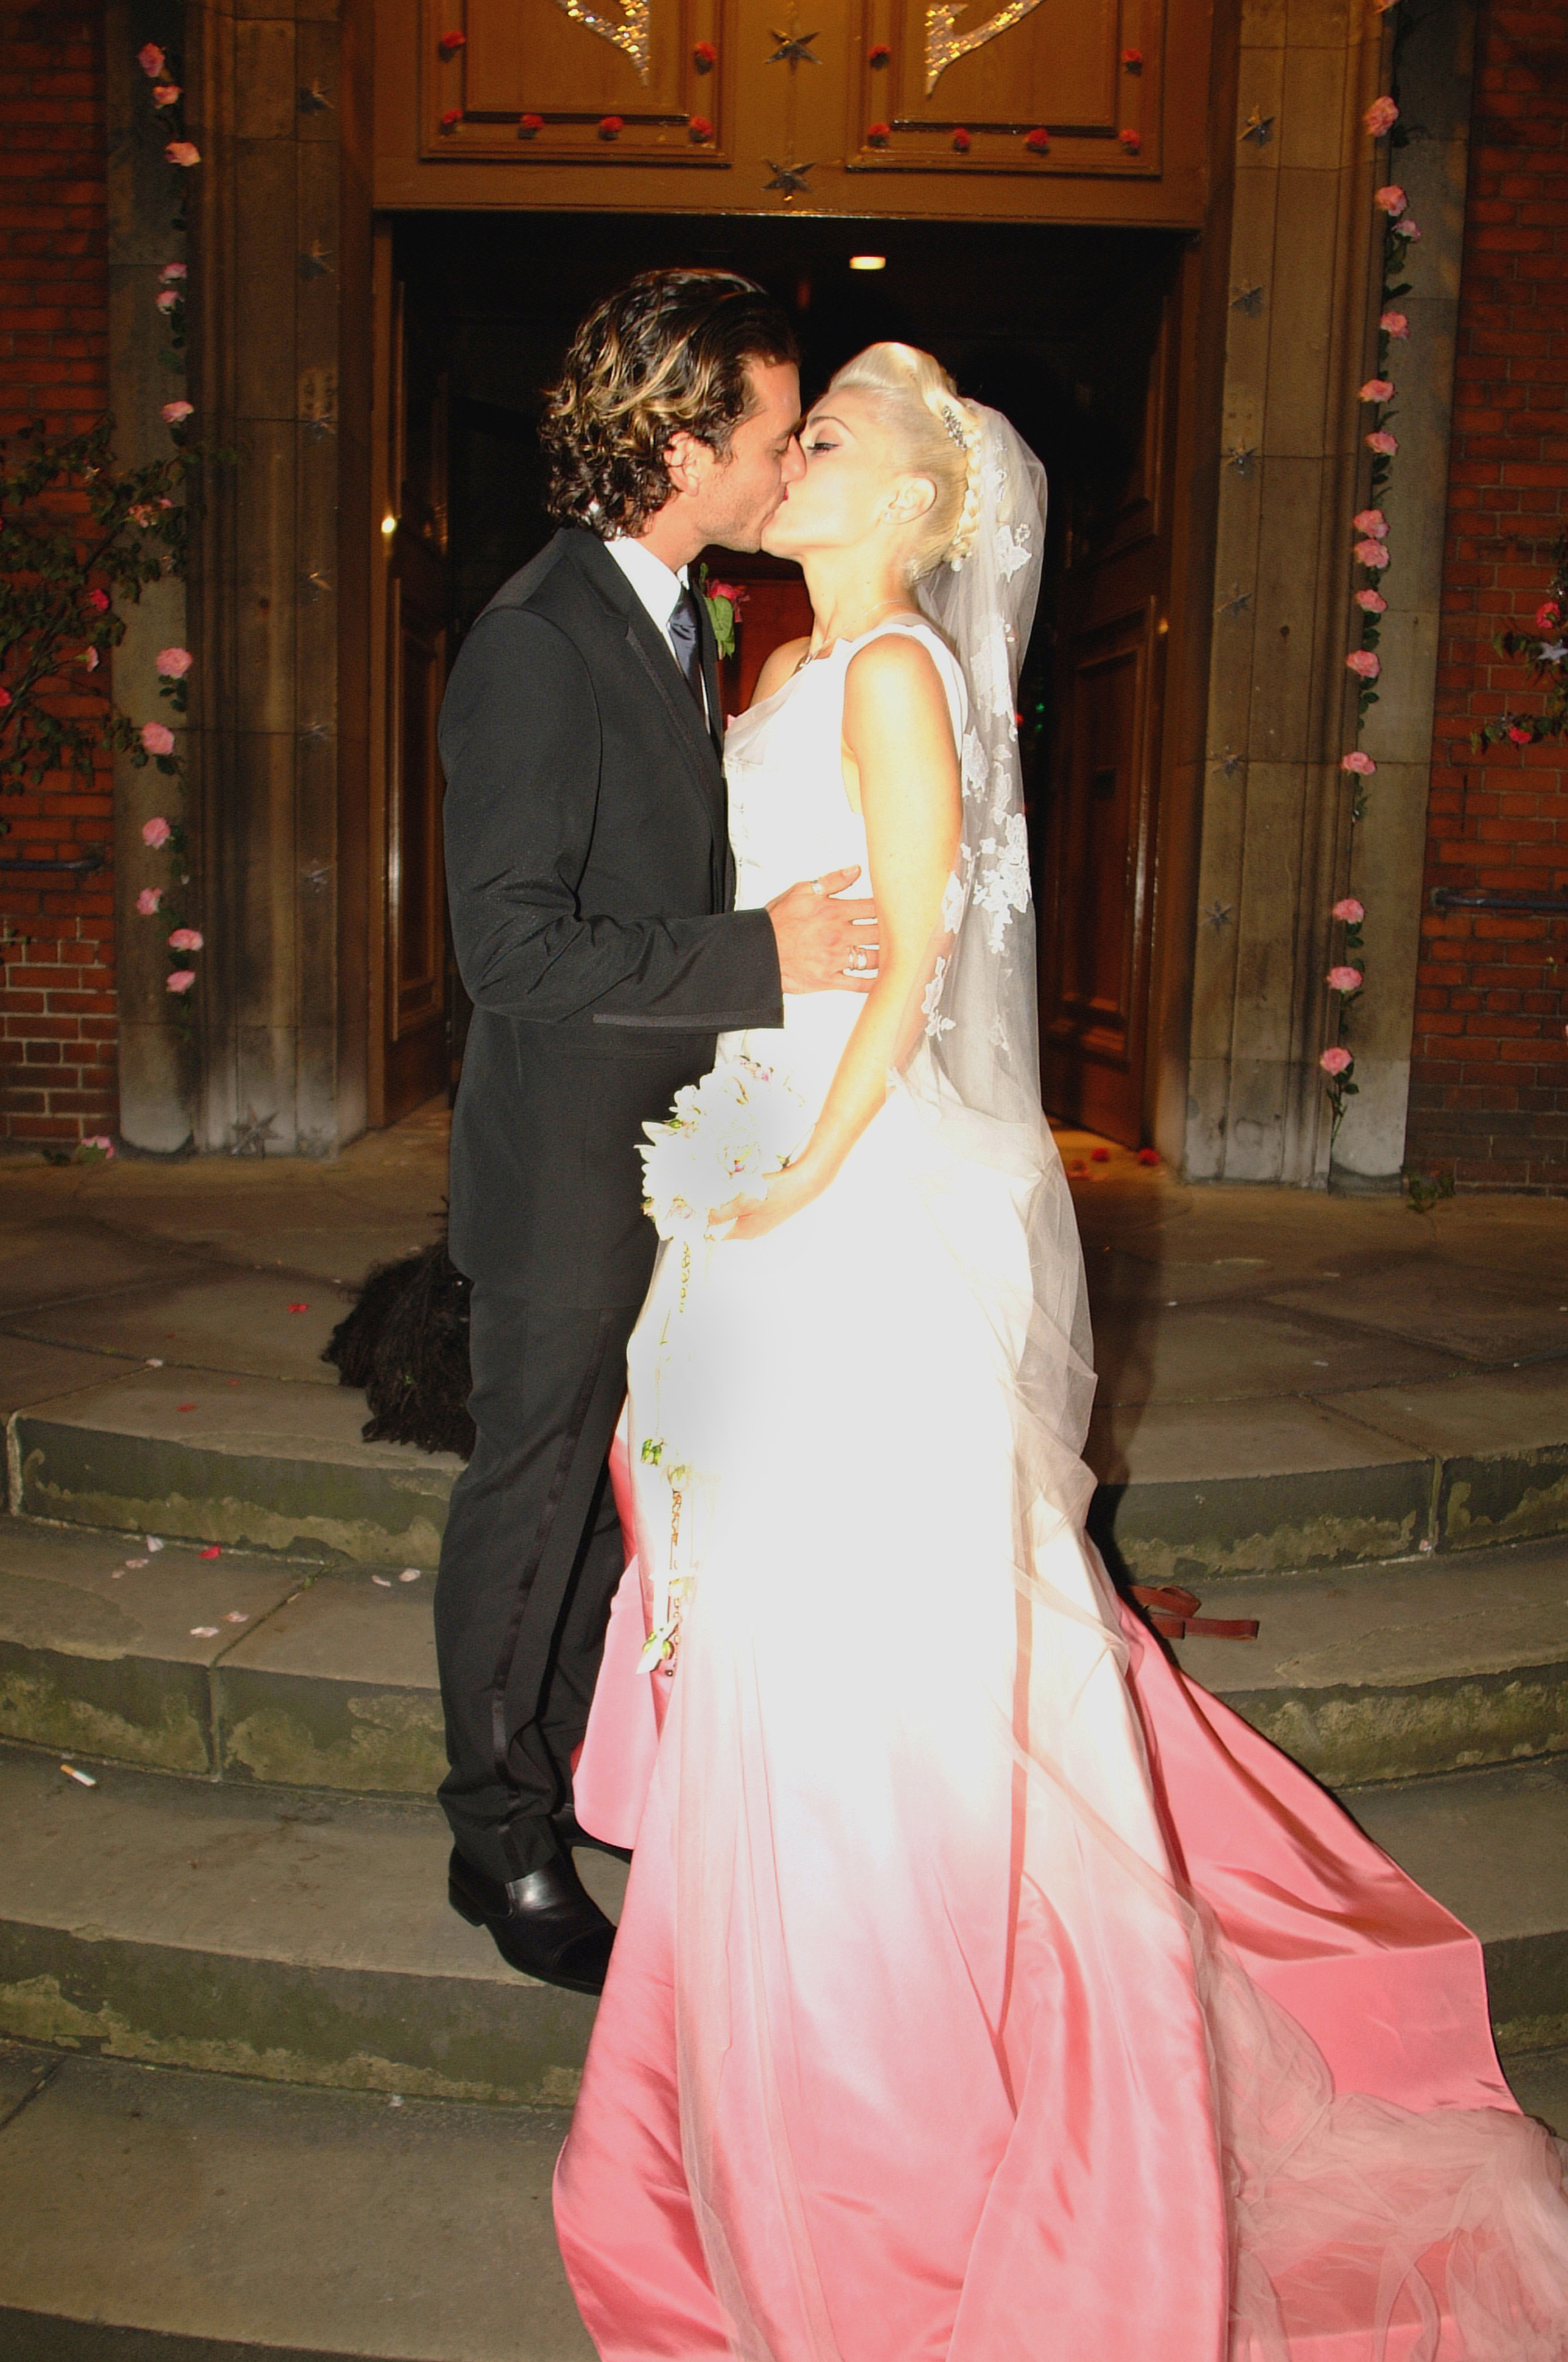 The 16 Most Scandalous Wedding Dresses of All Time Famous